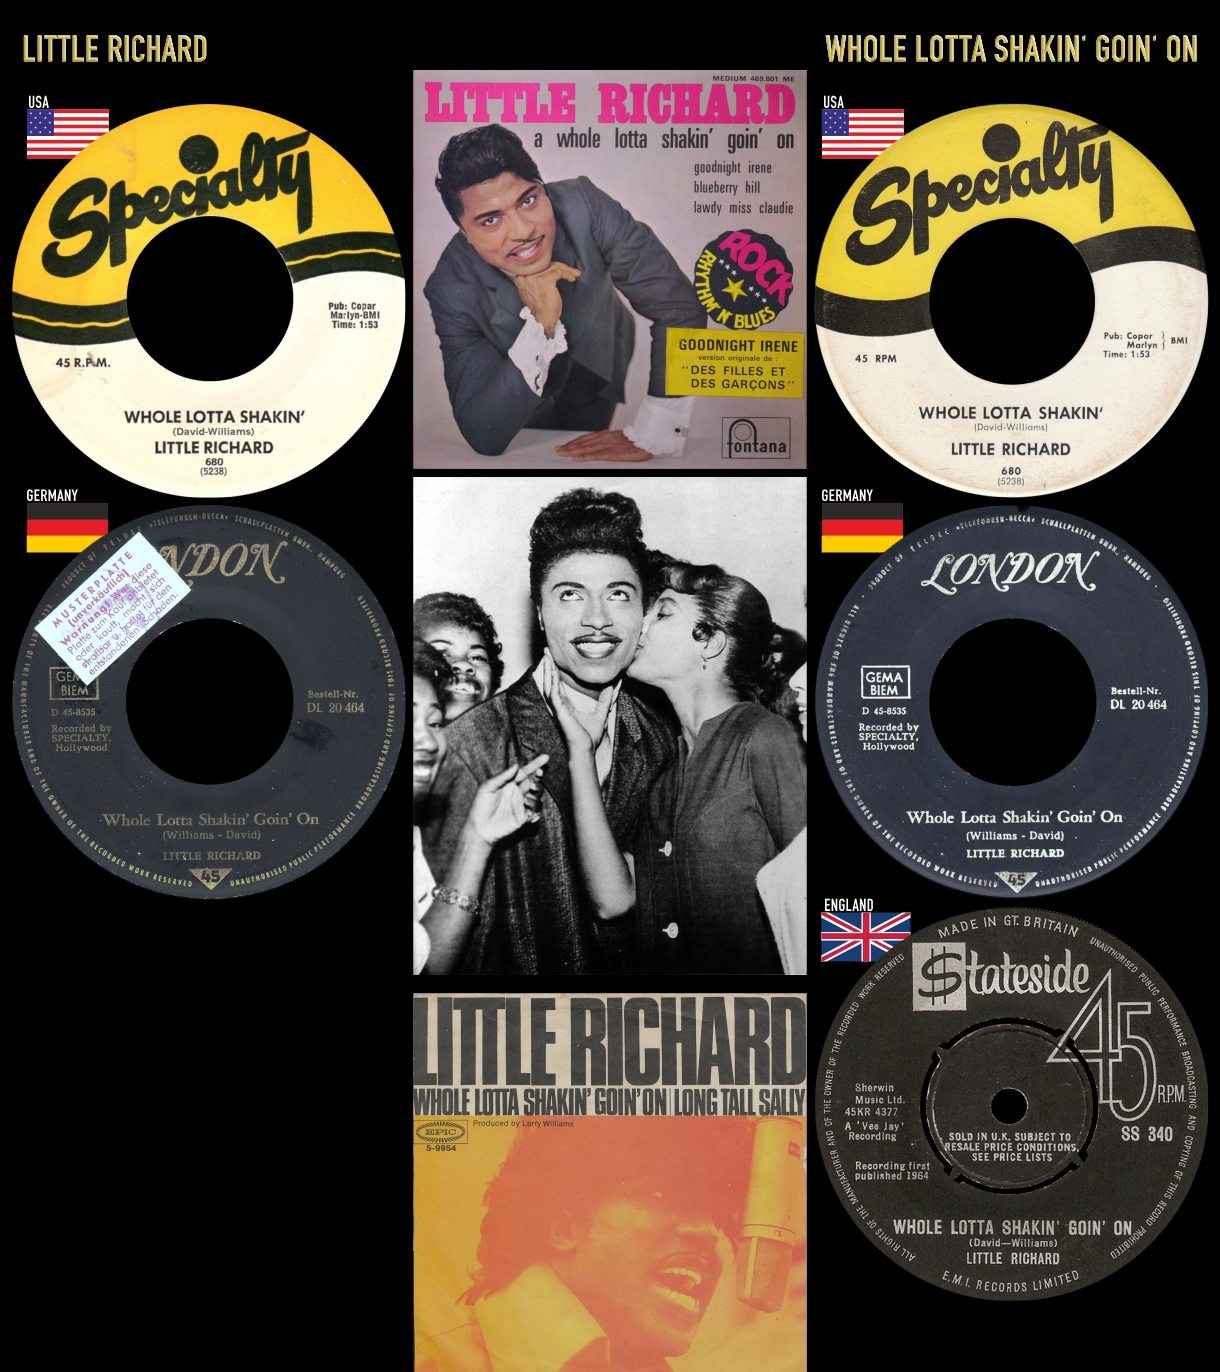 571019_Little Richard_Whole Lotta Shakin' Goin' On